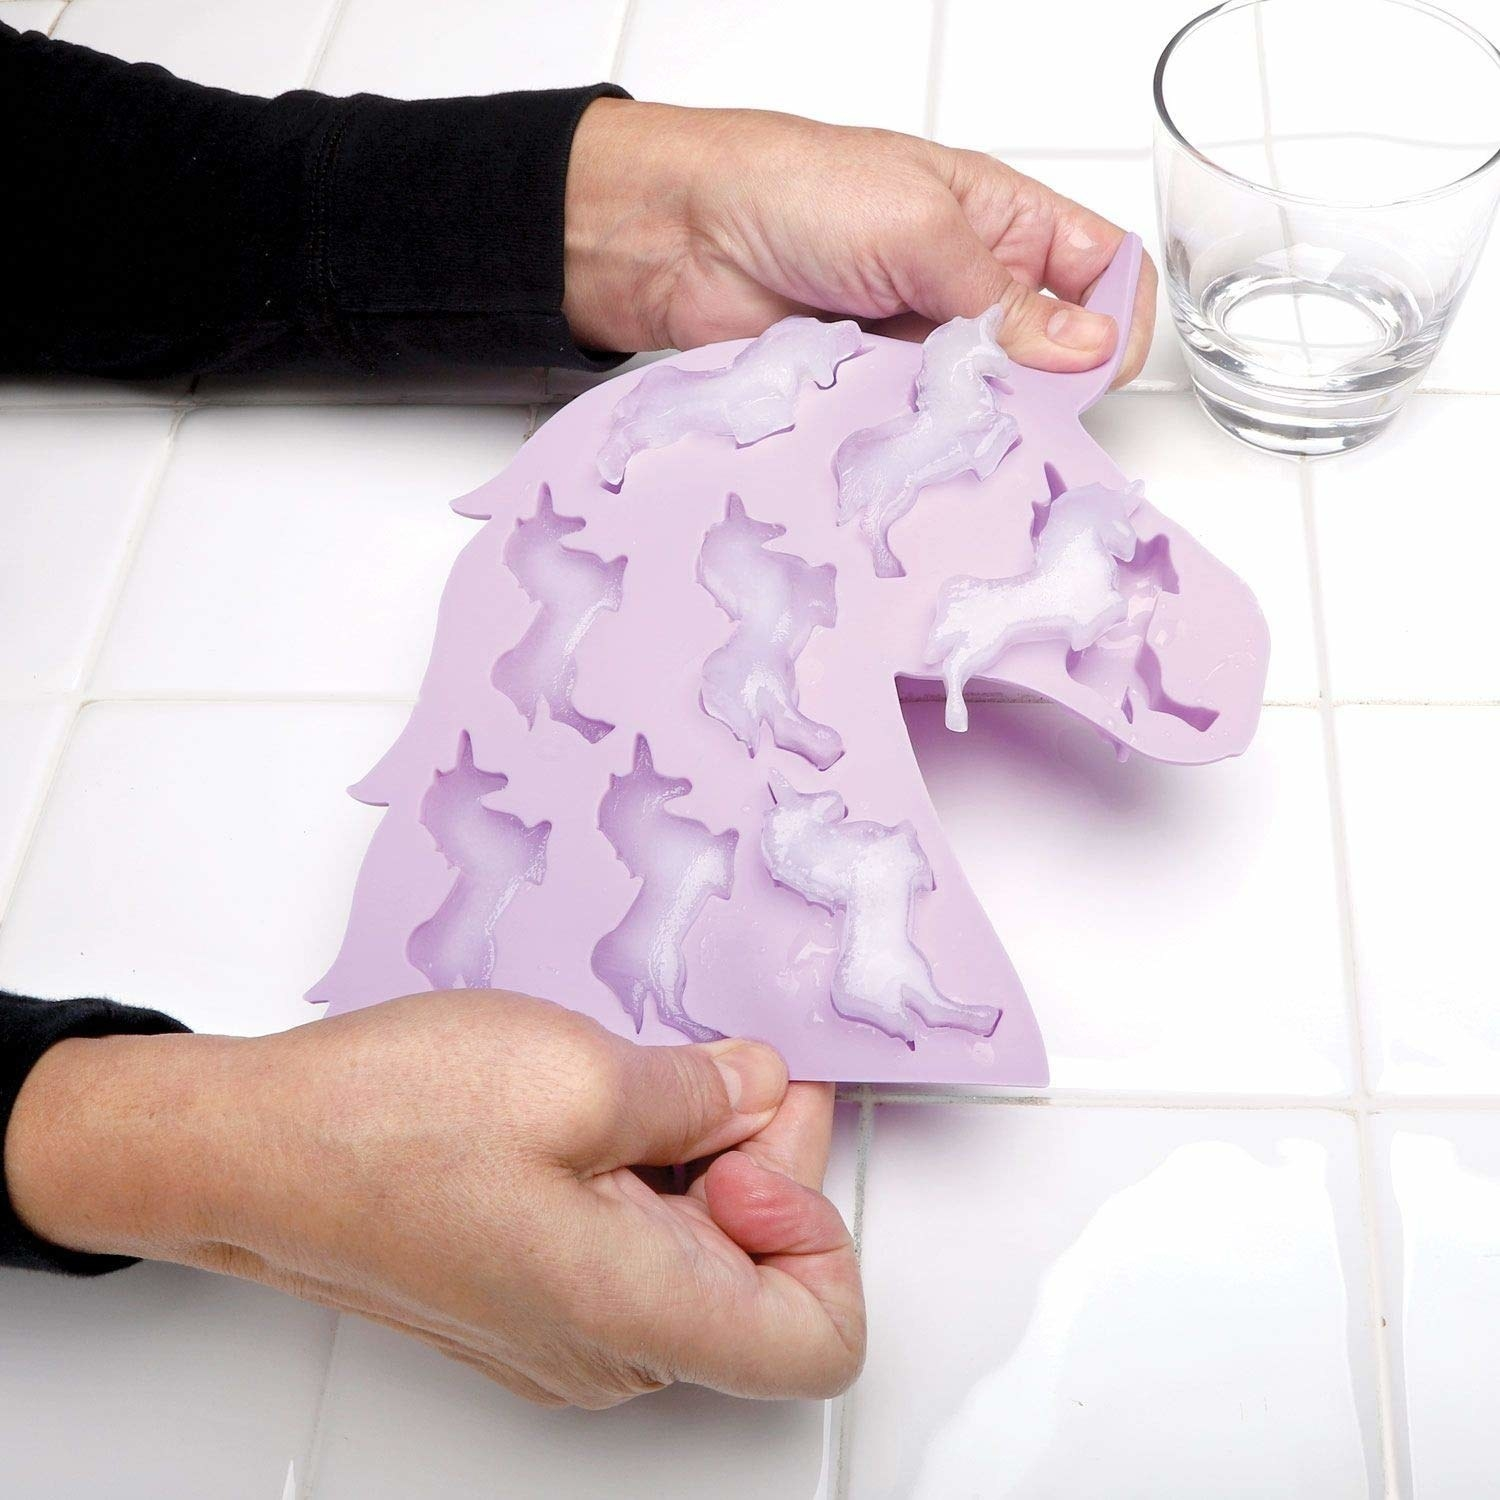 hands remove ice from unicorn ice making tray shaped like unicorn head